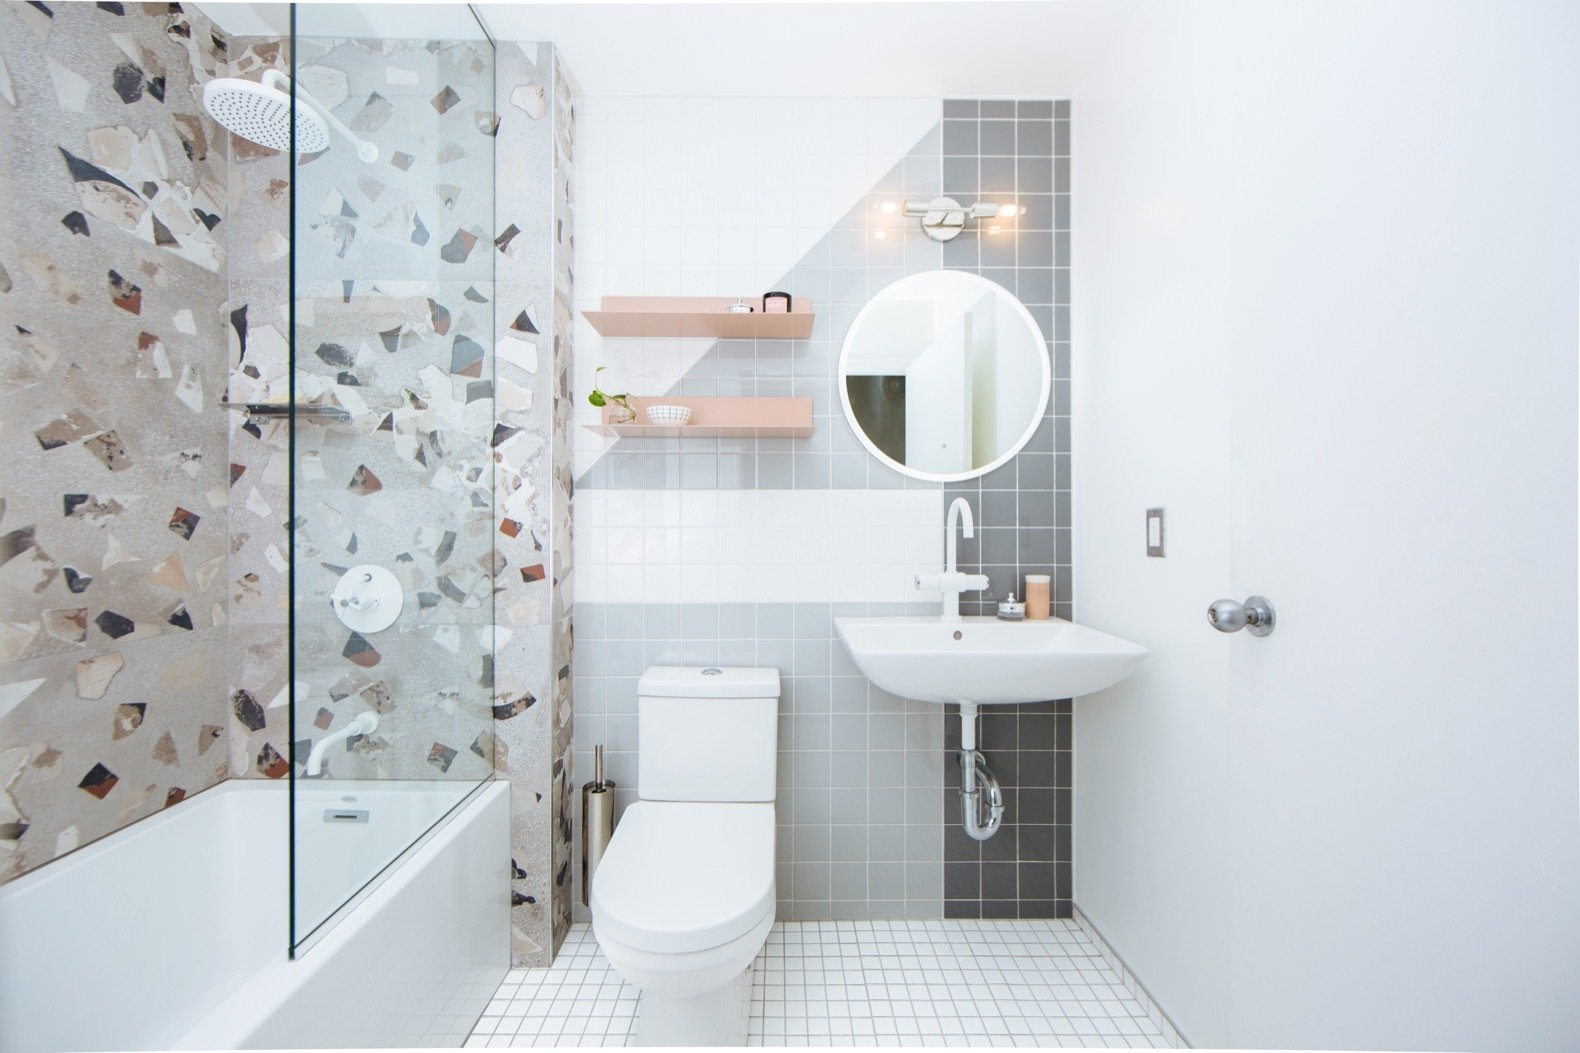 Budget Breakdown: A Humdrum Bathroom Gets a Retro-Chic Facelift For $17K